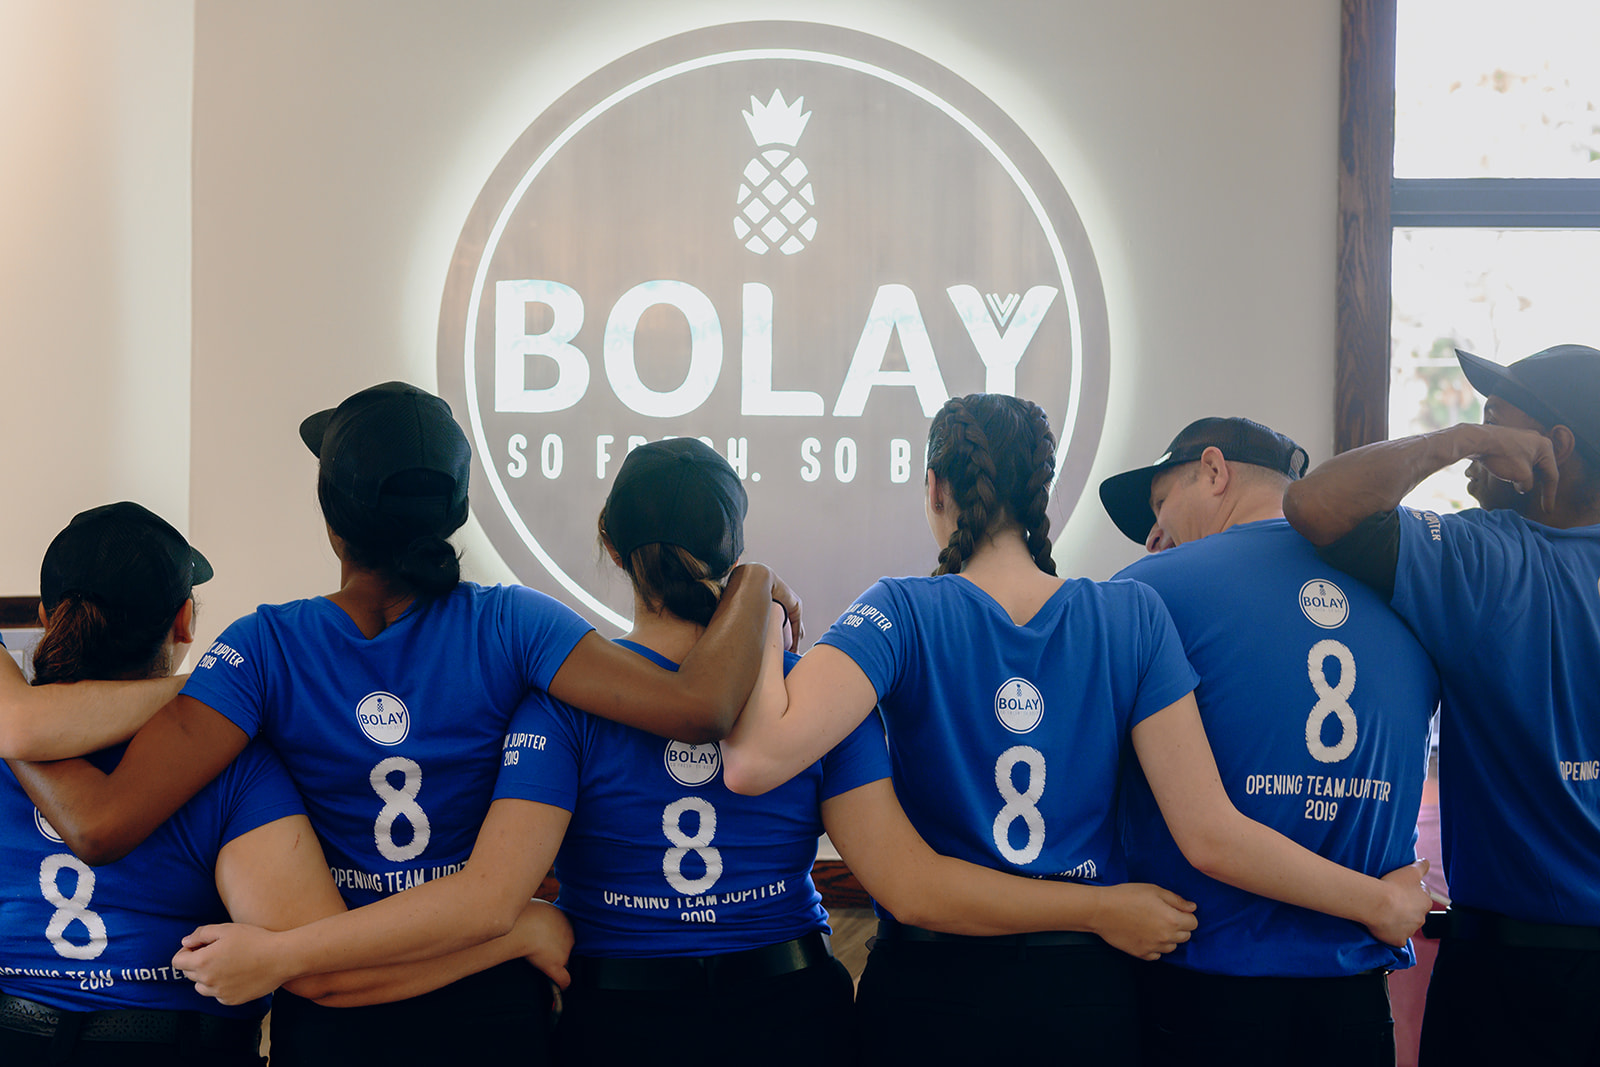 Bolay team gets ready